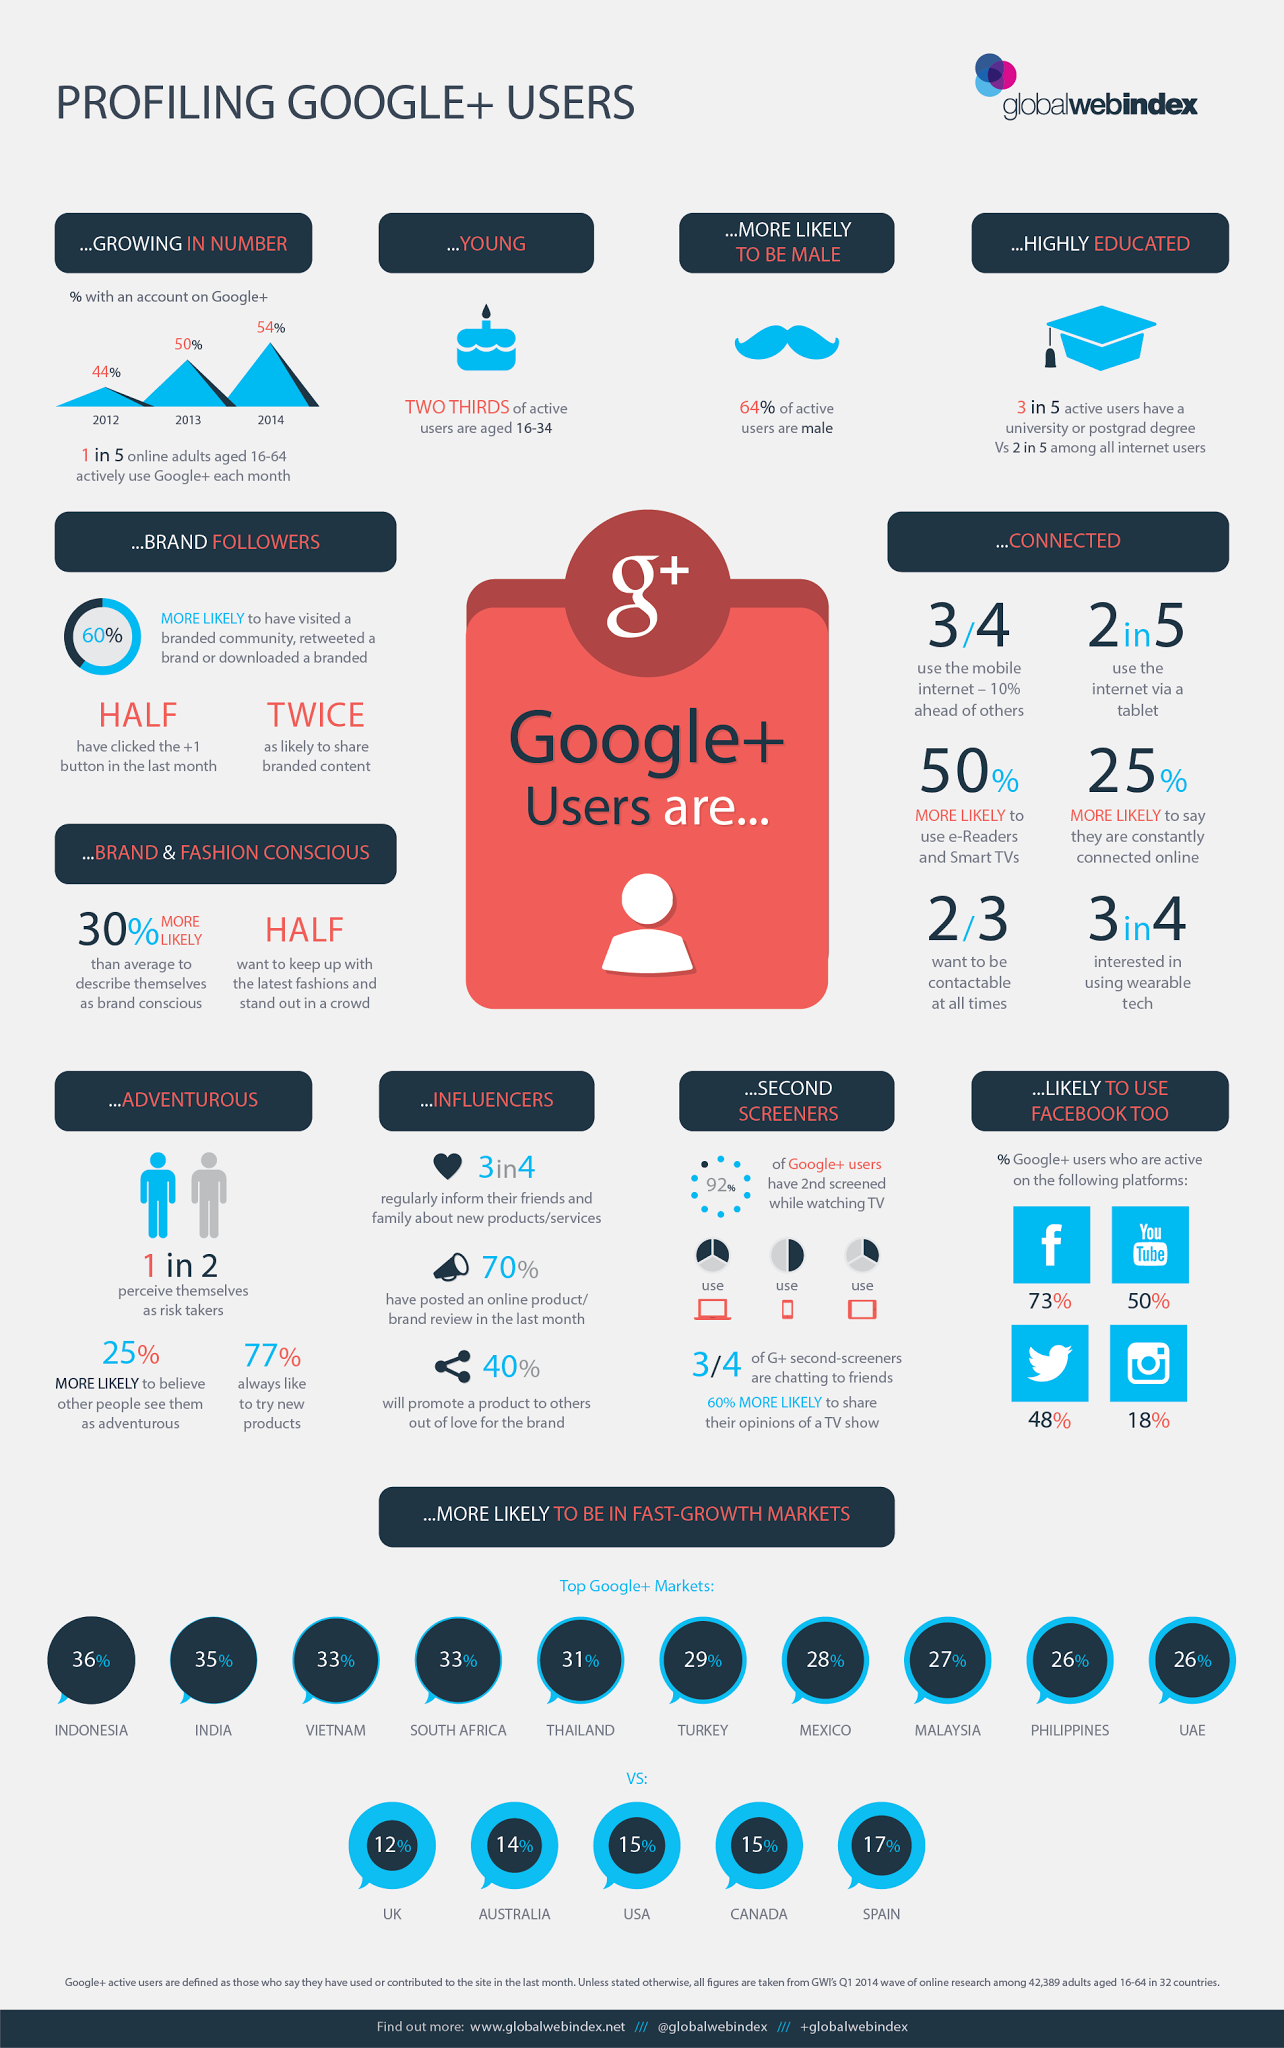 Google-Plus-Users-2014-infographic (1)